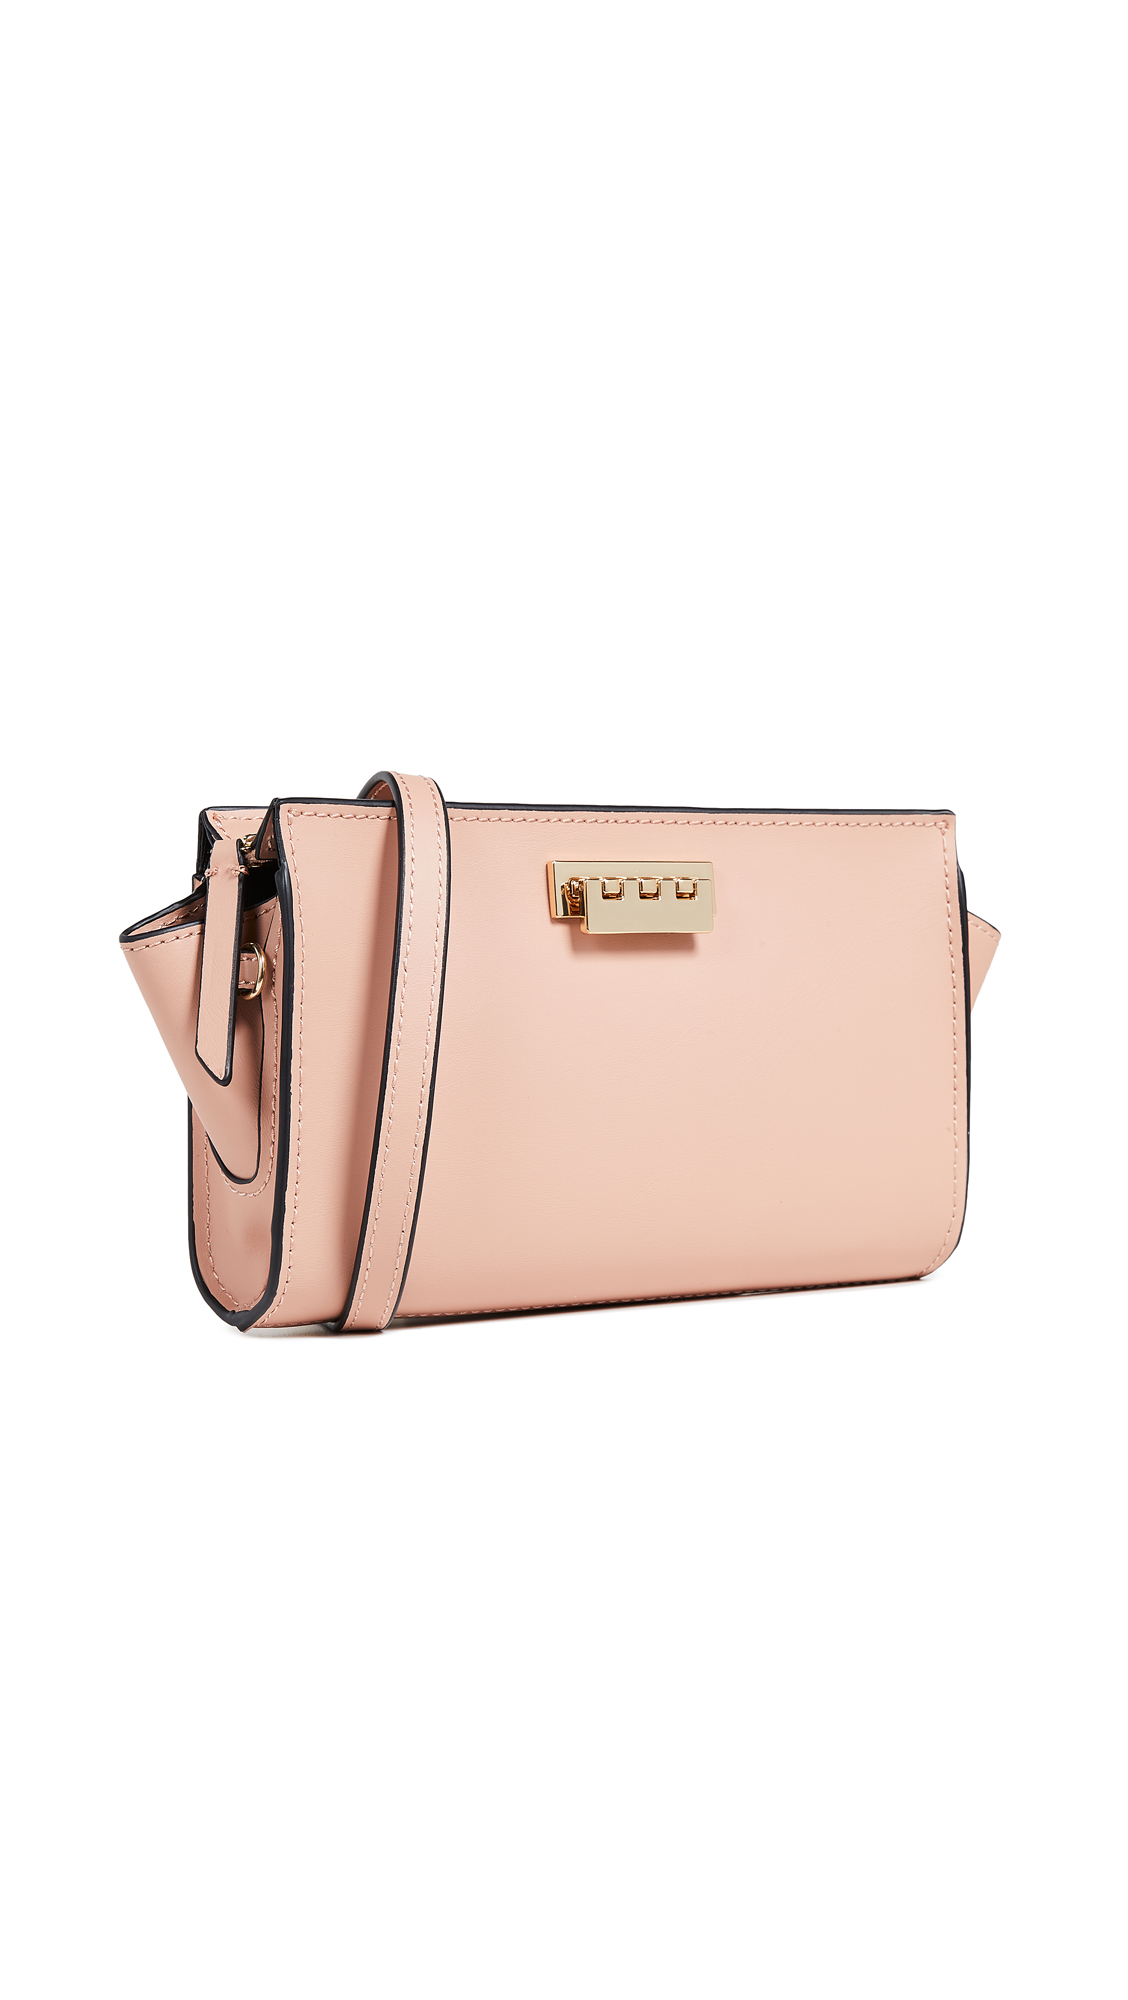 Eartha Iconic Phone Wallet Crossbody Bag in Rose Cloud